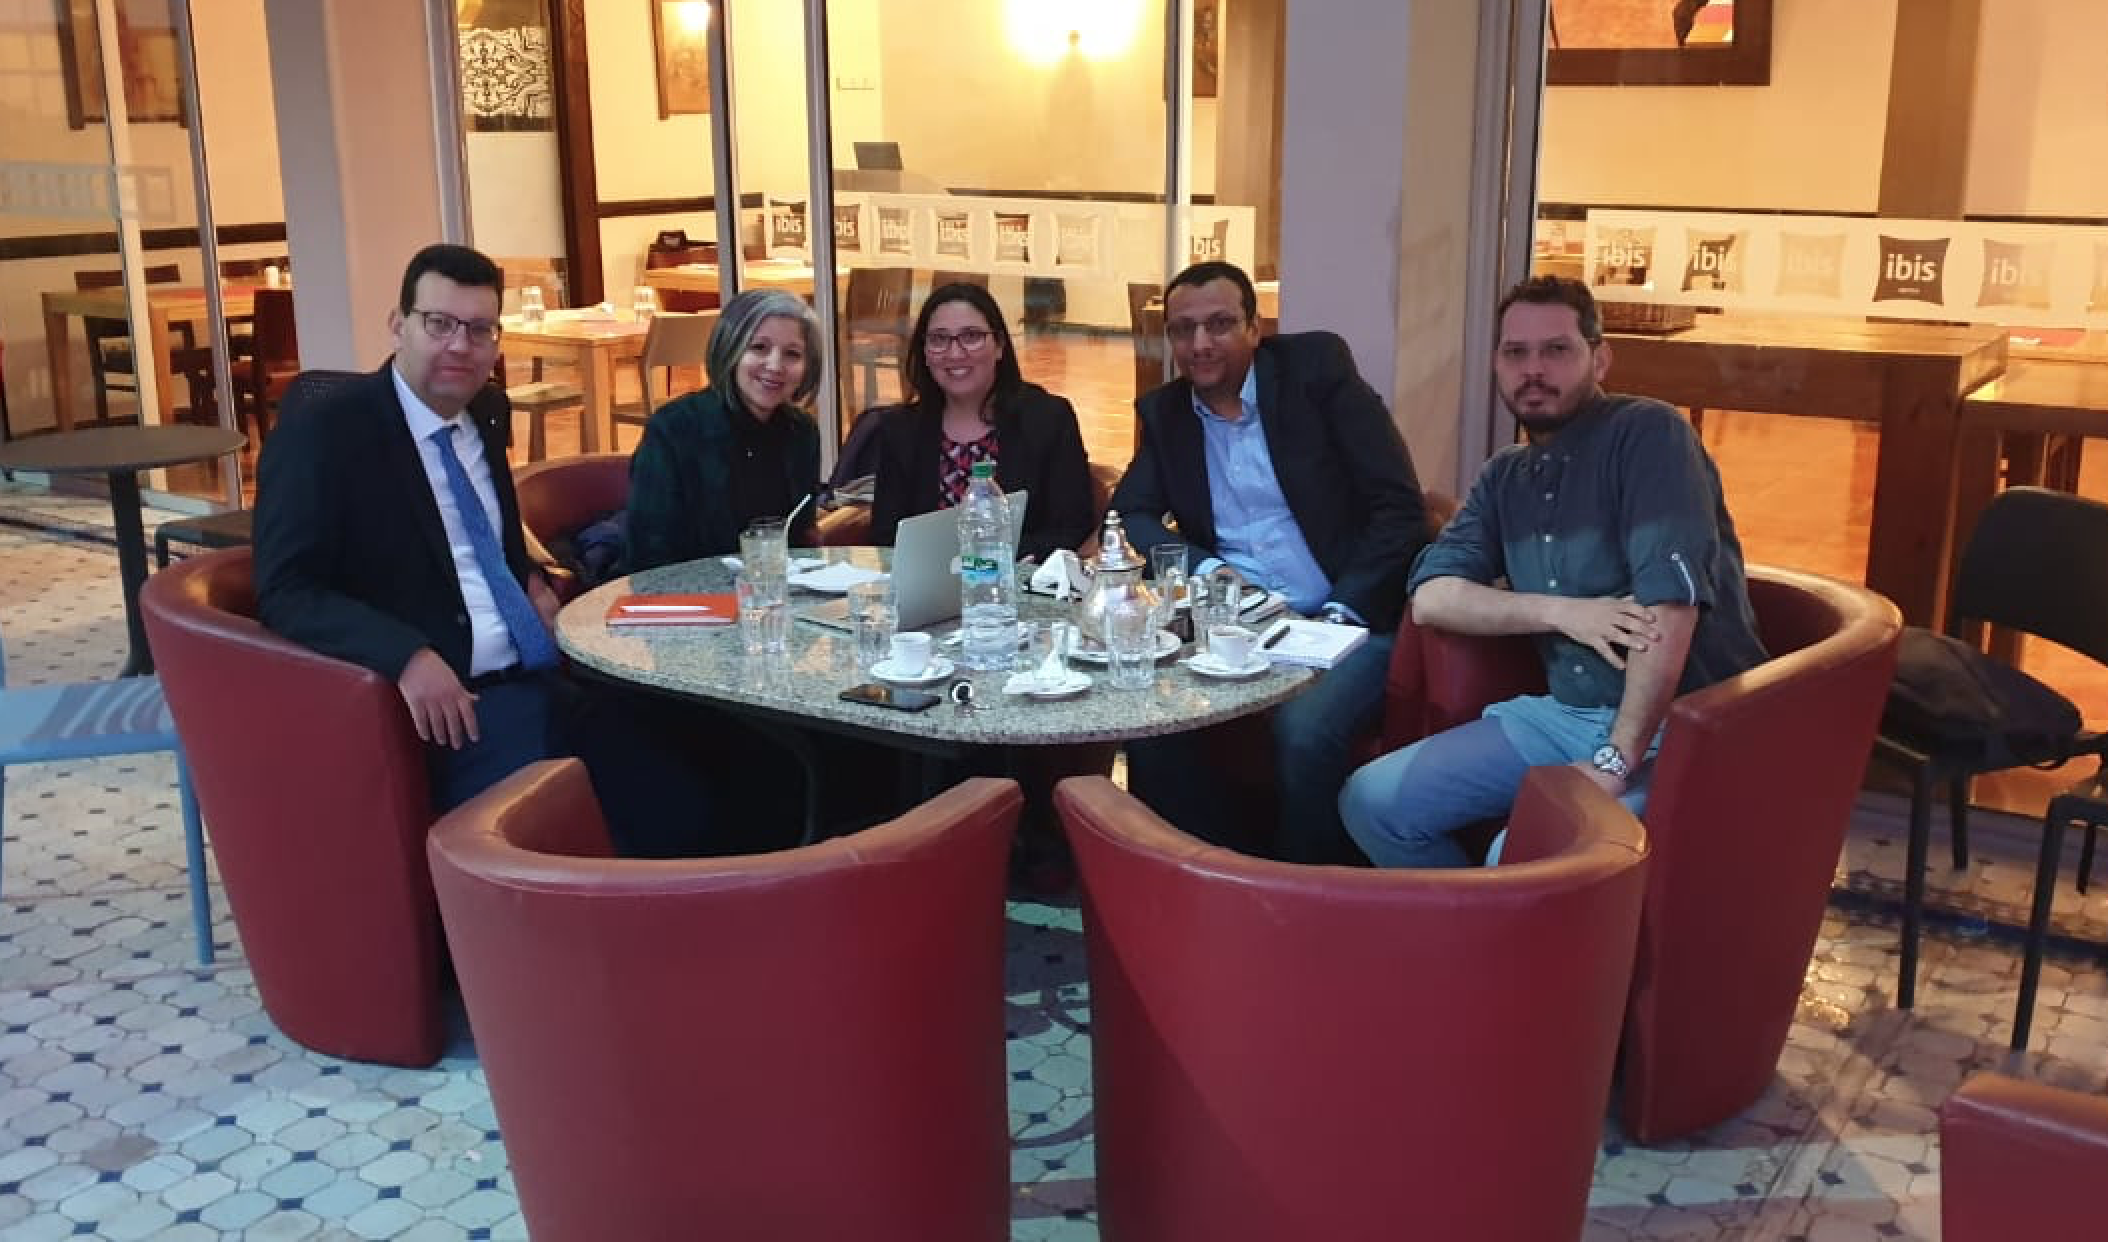 meeting-oujda-2020-03-08-a-15-23-416B716853-8453-58CD-FF9B-79F0335DD5BC.png